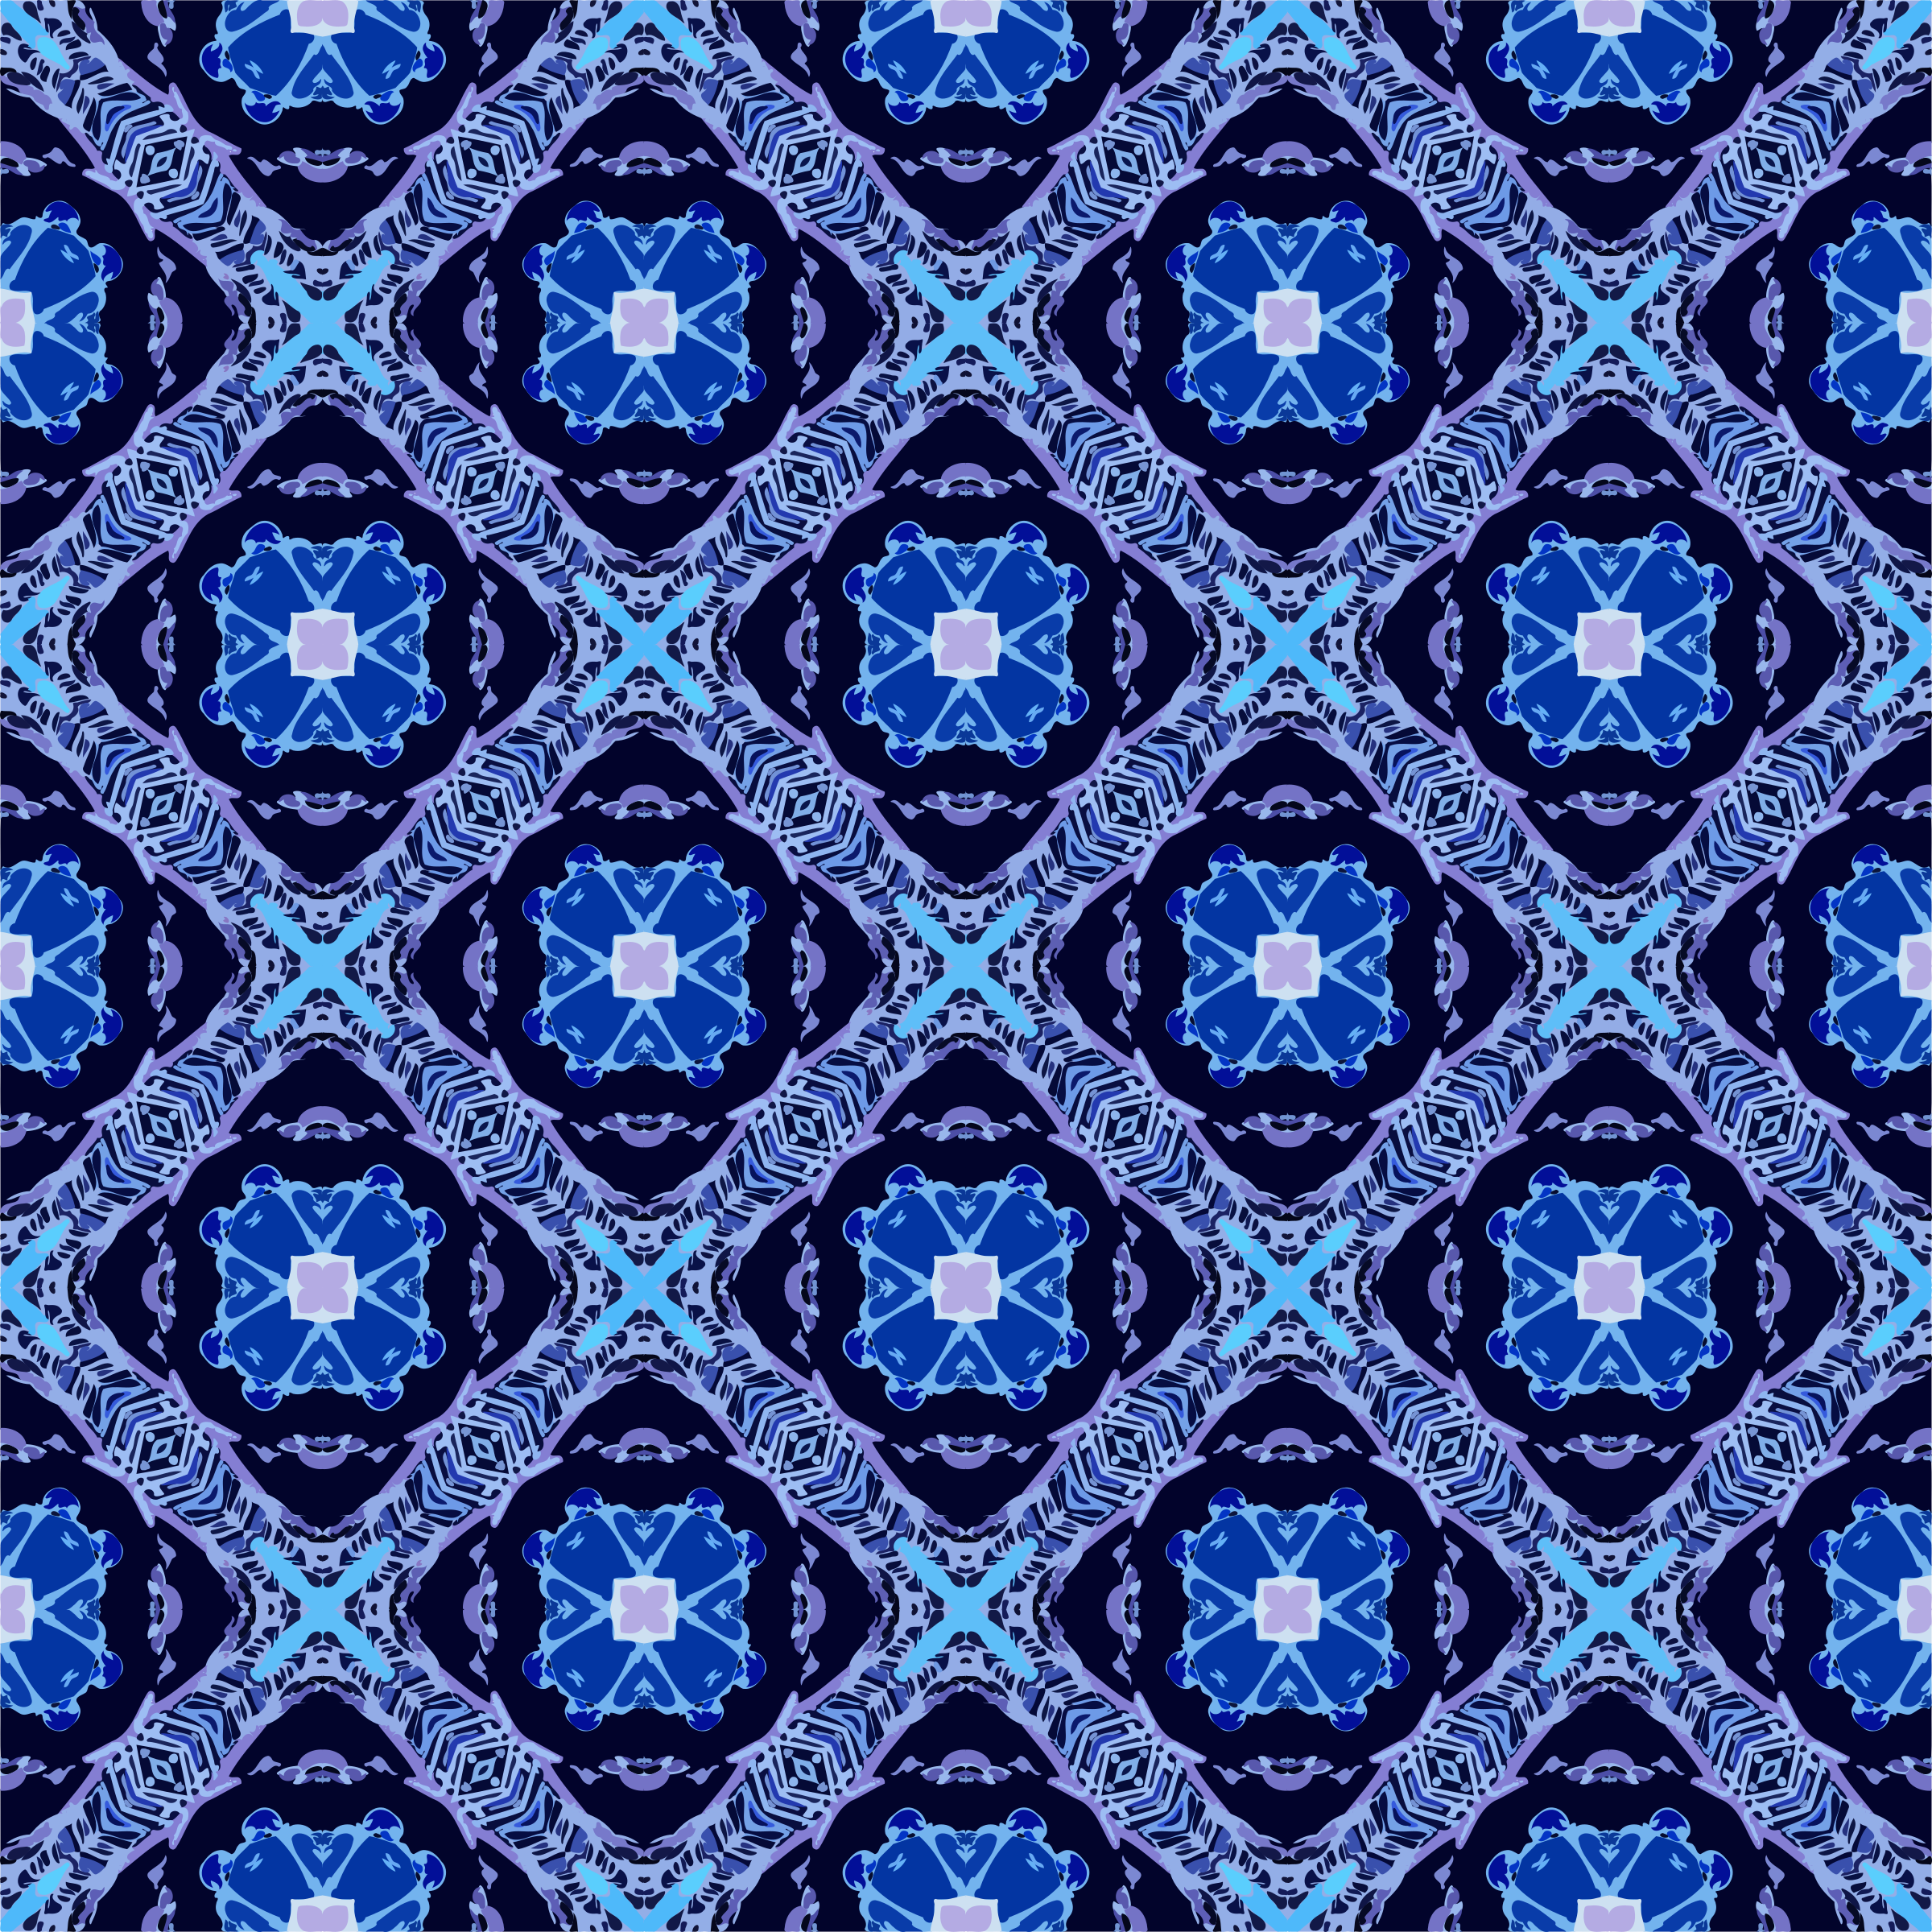 Background pattern 152 (colour 2) by Firkin